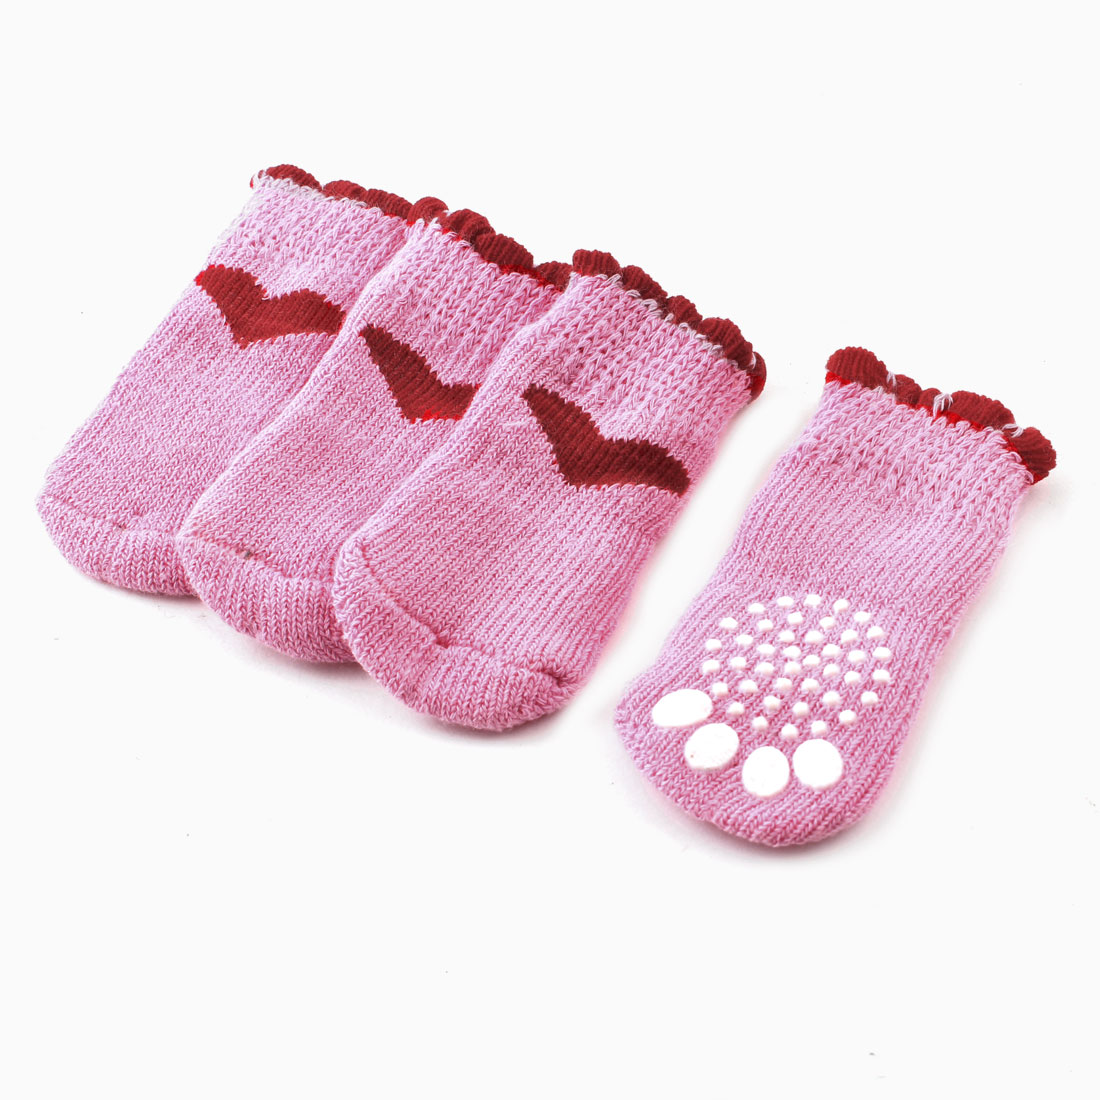 Pink Red Heart Paw Pattern Knitted Elastic Pet Dog Doggie Socks 2 Pairs